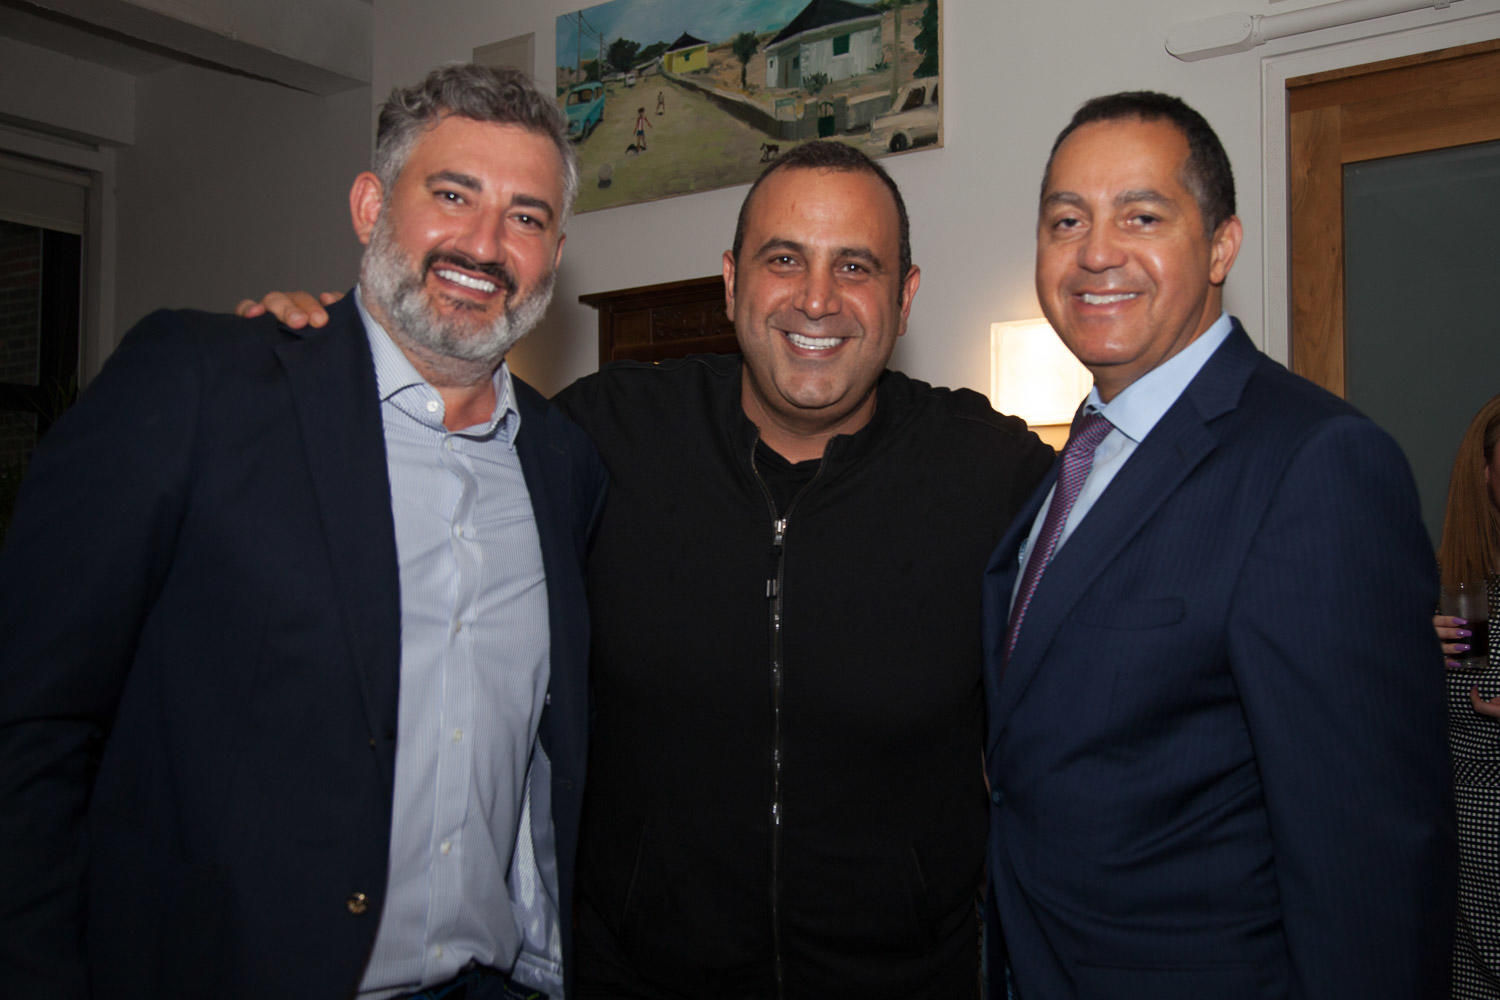 The Real Deal's Amir Korangy, SBE Entertainment's Sam Nazarian, and Peebles Corporation's Don Peebles